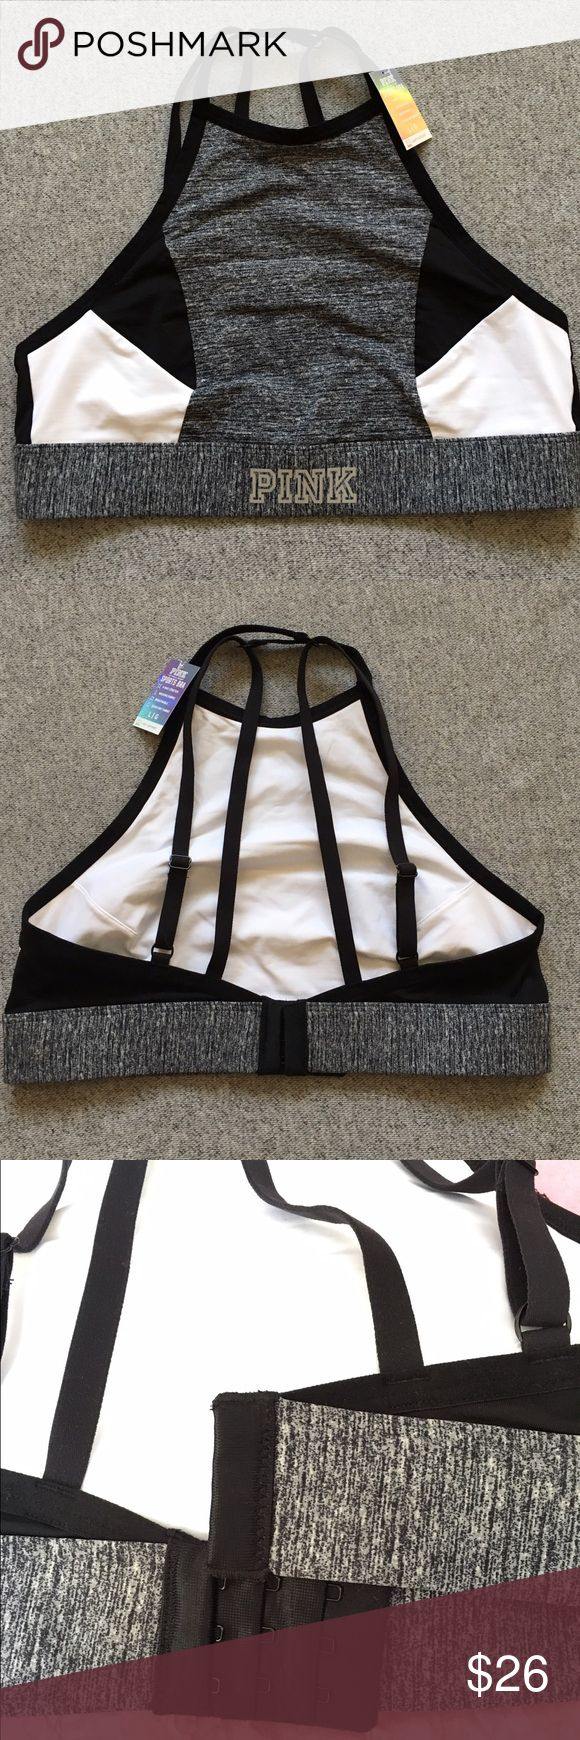 VS Pink Sports Bra Cute high neck sports bra. Regular bra closure in the back. Adjustable shoulder straps that cross in the back. Grey, black and white in color. PINK Victoria's Secret Intimates & Sleepwear Bras